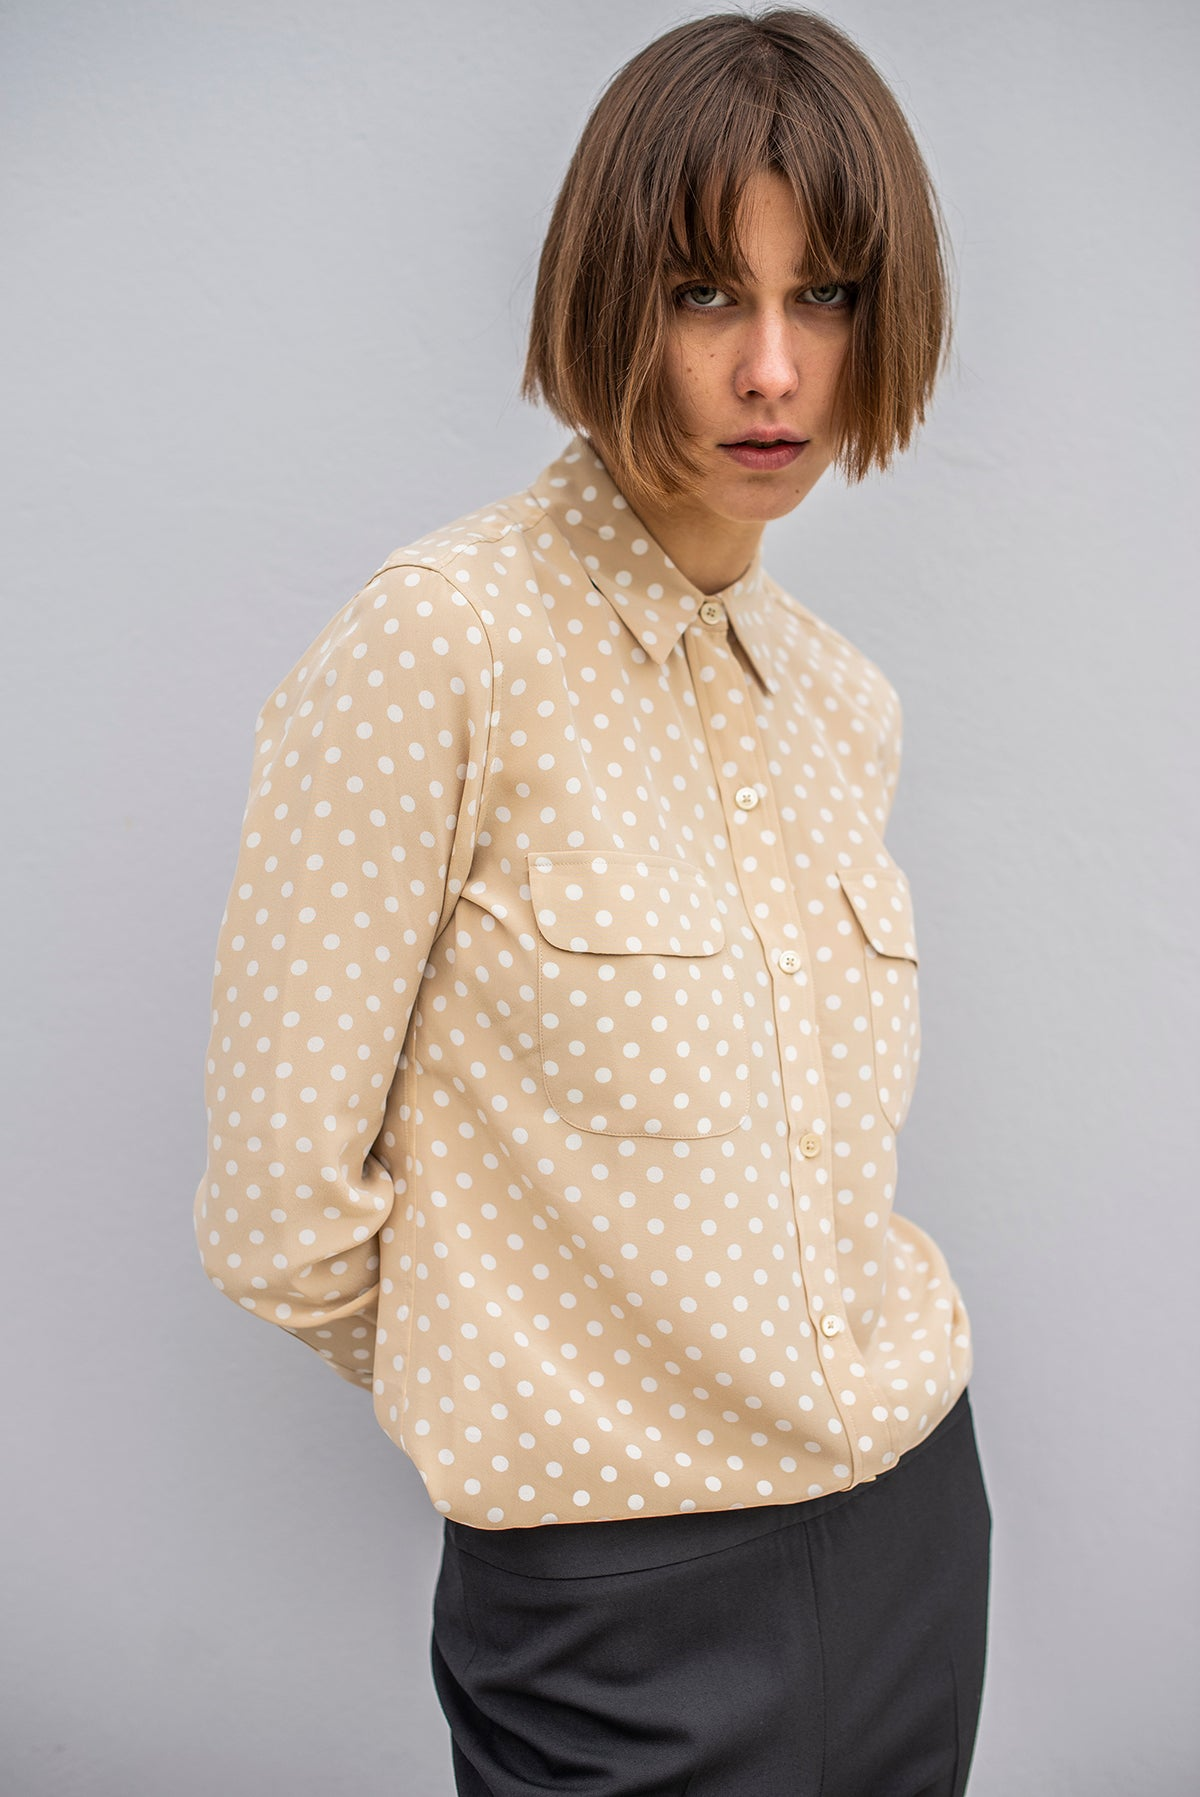 Equipment - Slim Signature Shirt - Safari/White